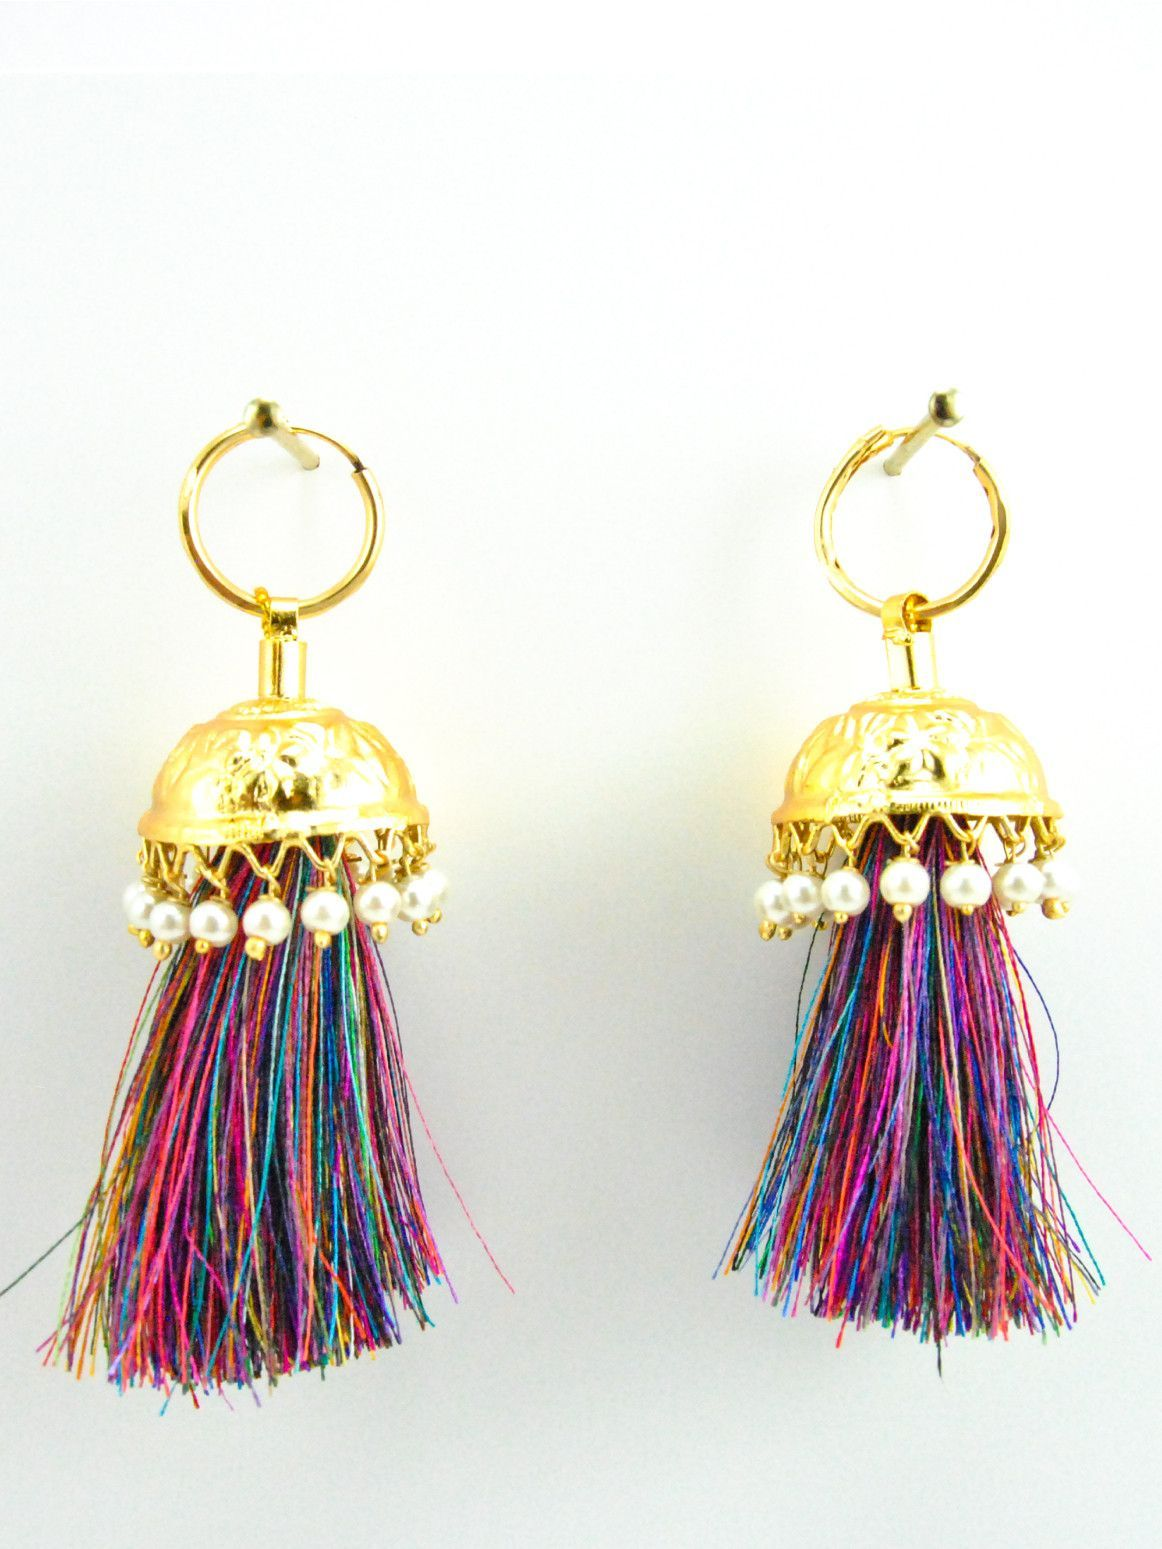 these earring are the epitome of the punjabi culture made with